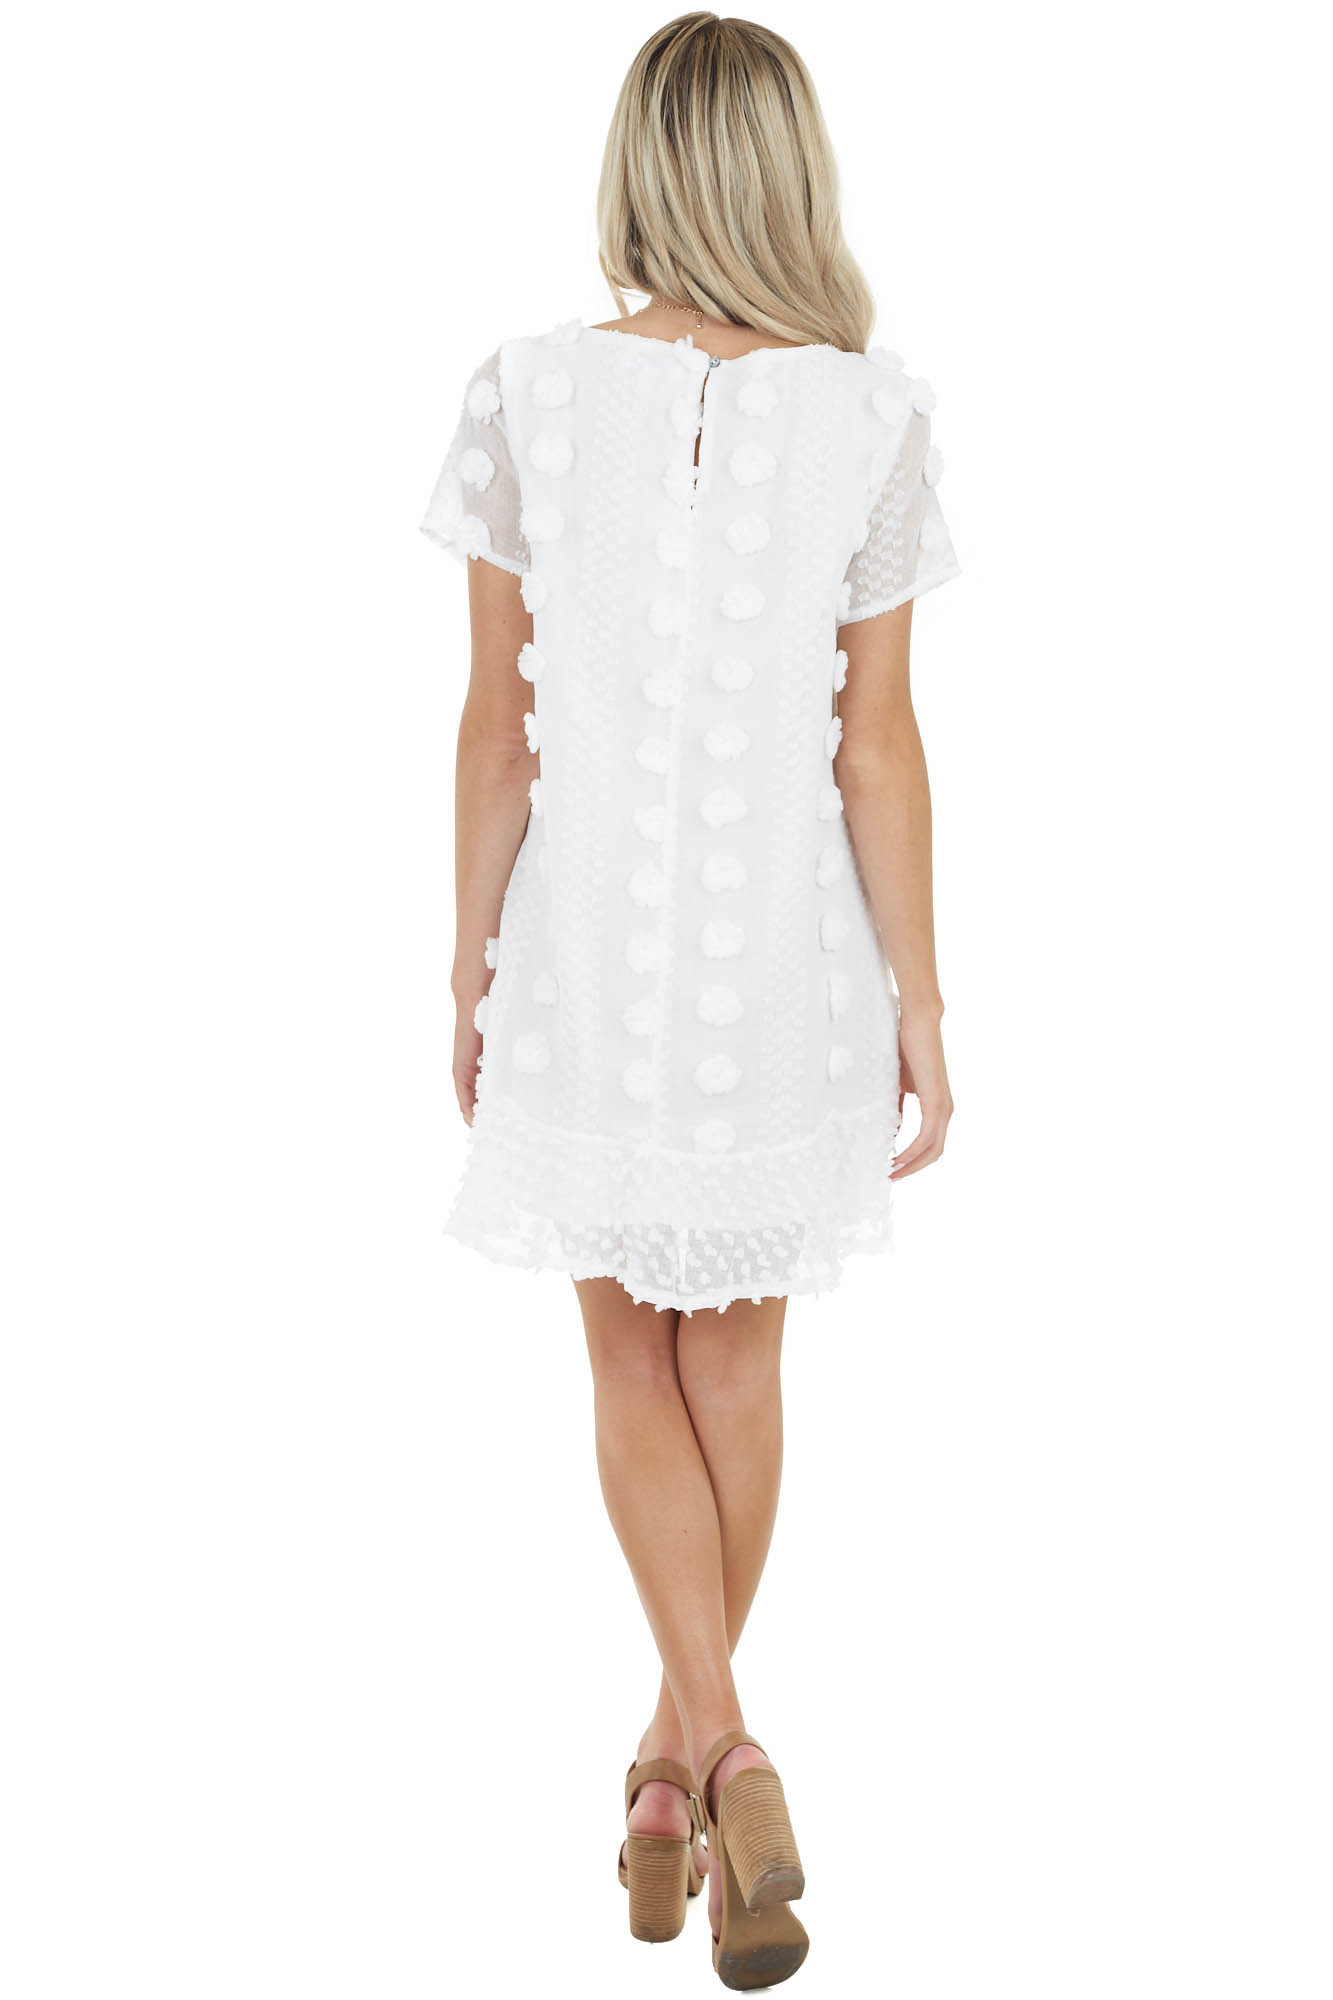 Ivory Dress with 3D Textured Details and Ruffle Hemline